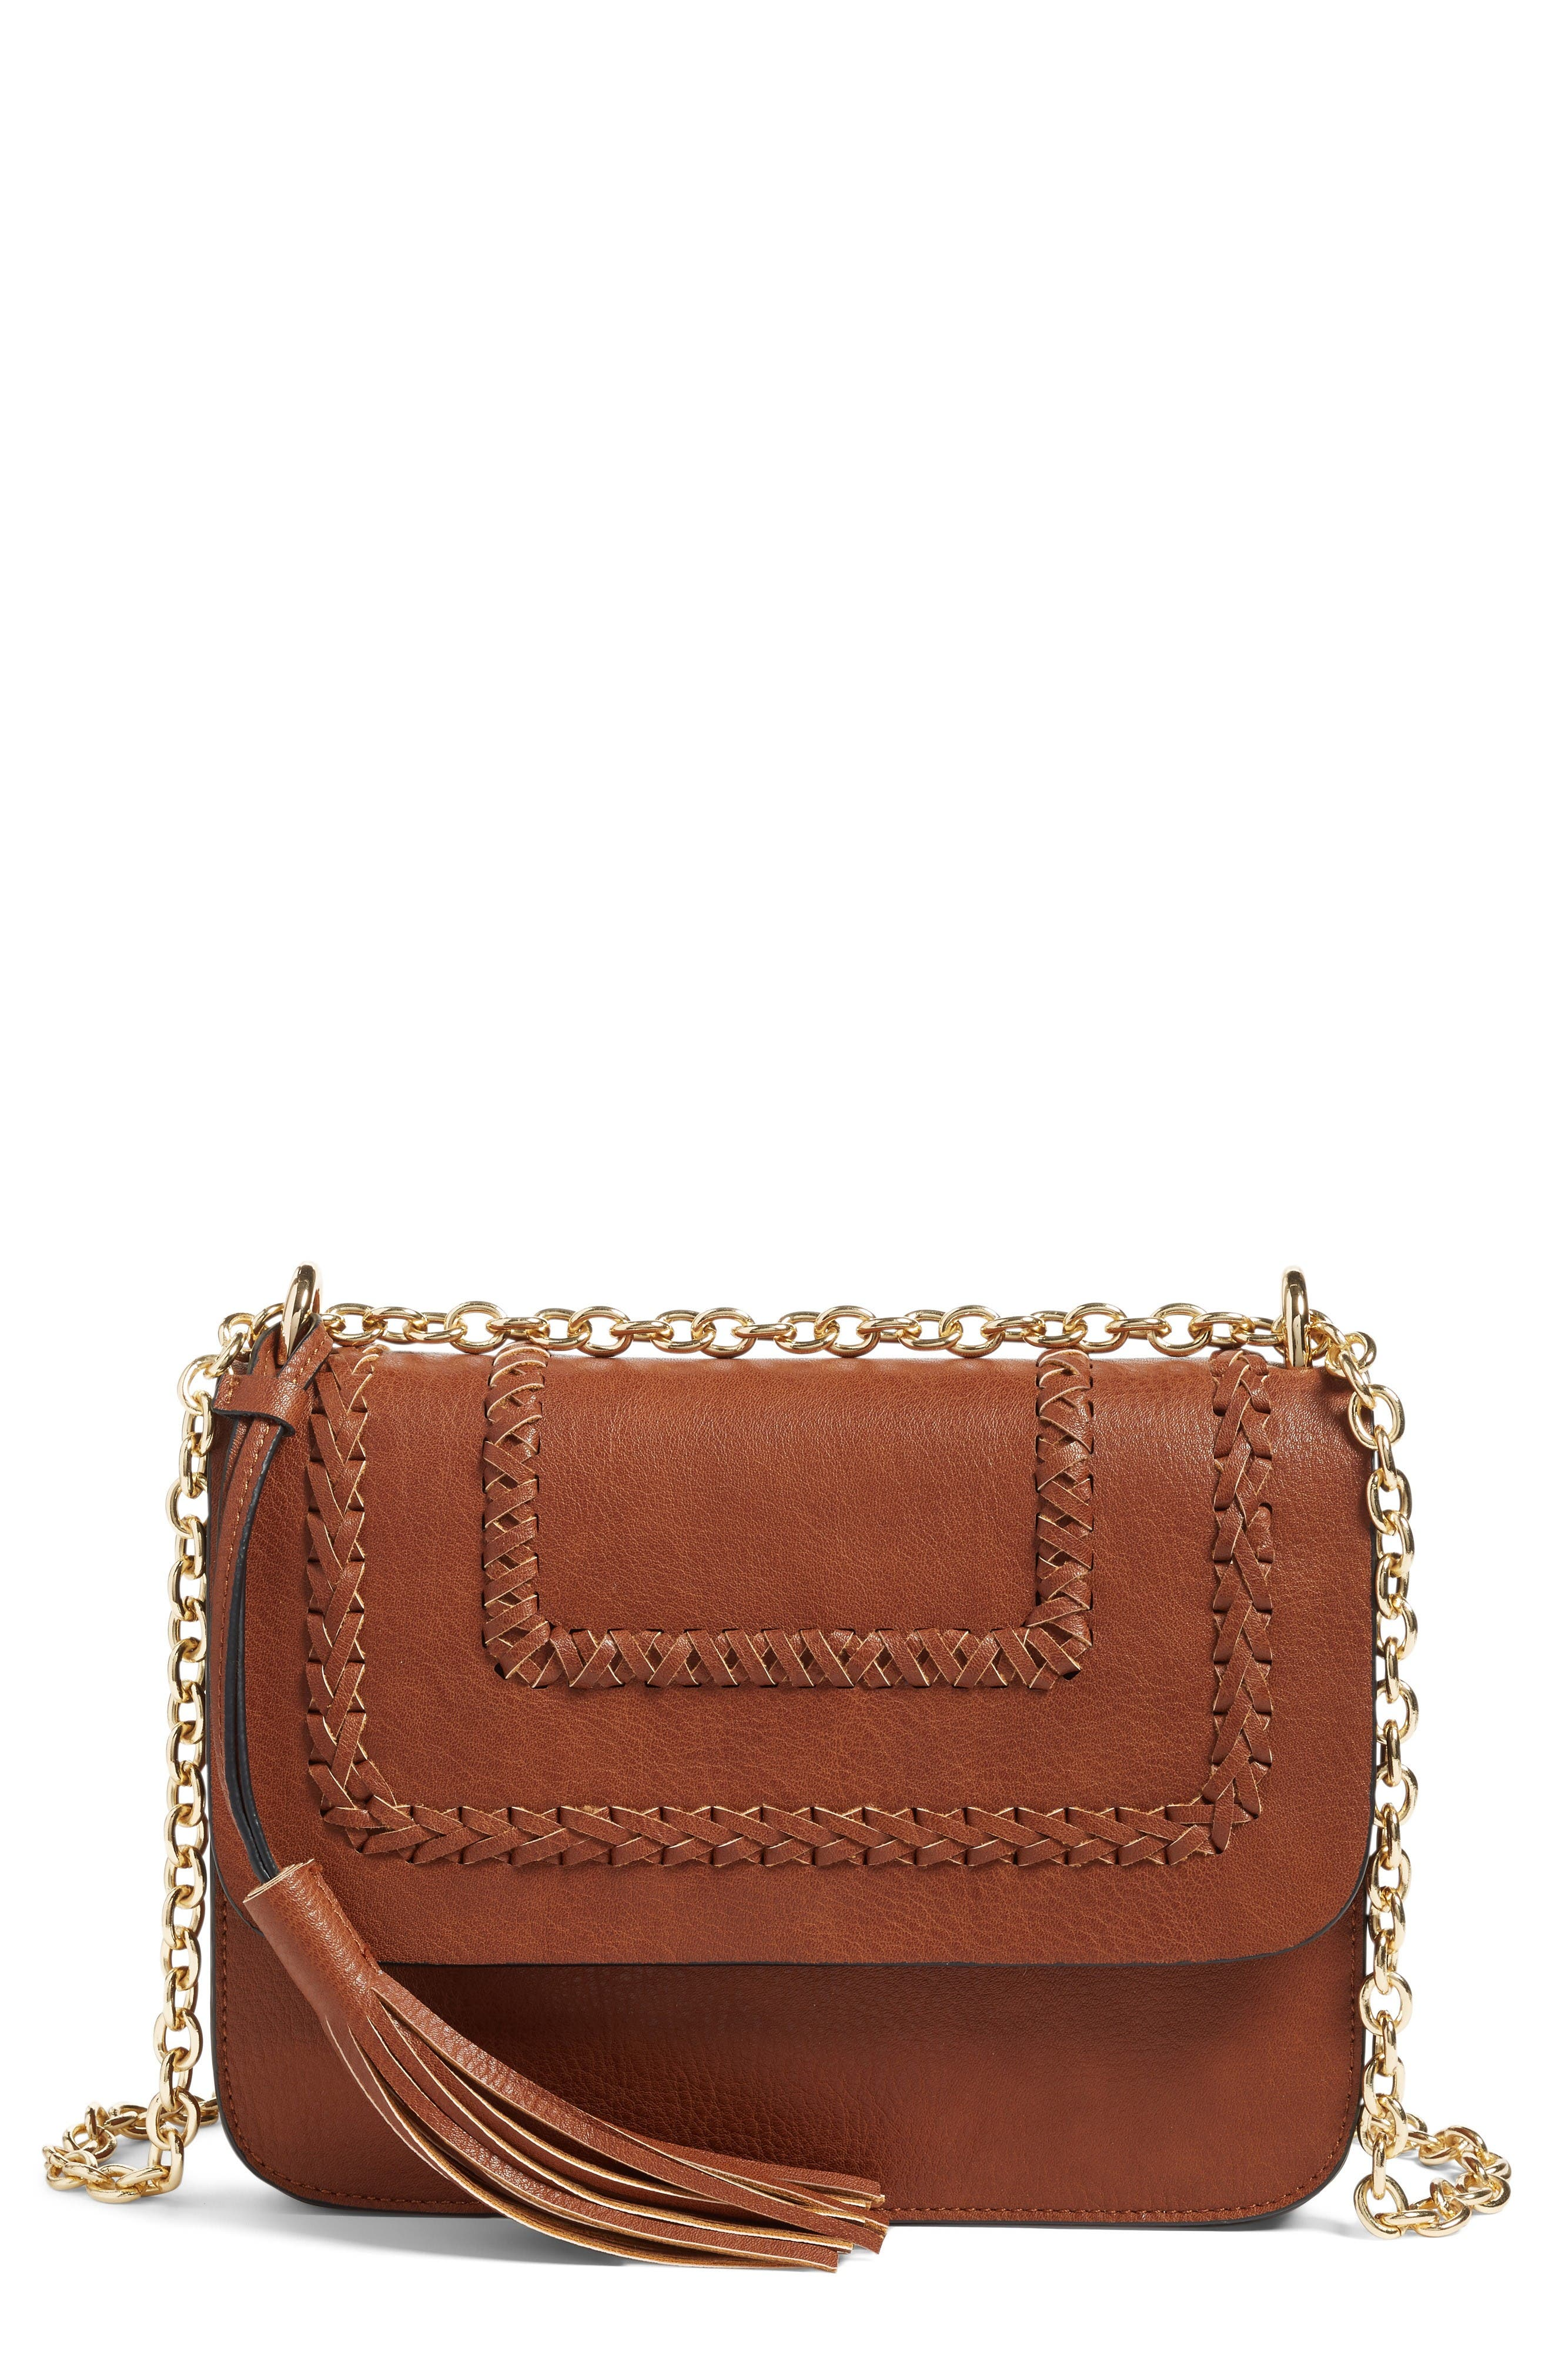 Main Image - Chelsea28 Chace Faux Leather Shoulder Bag